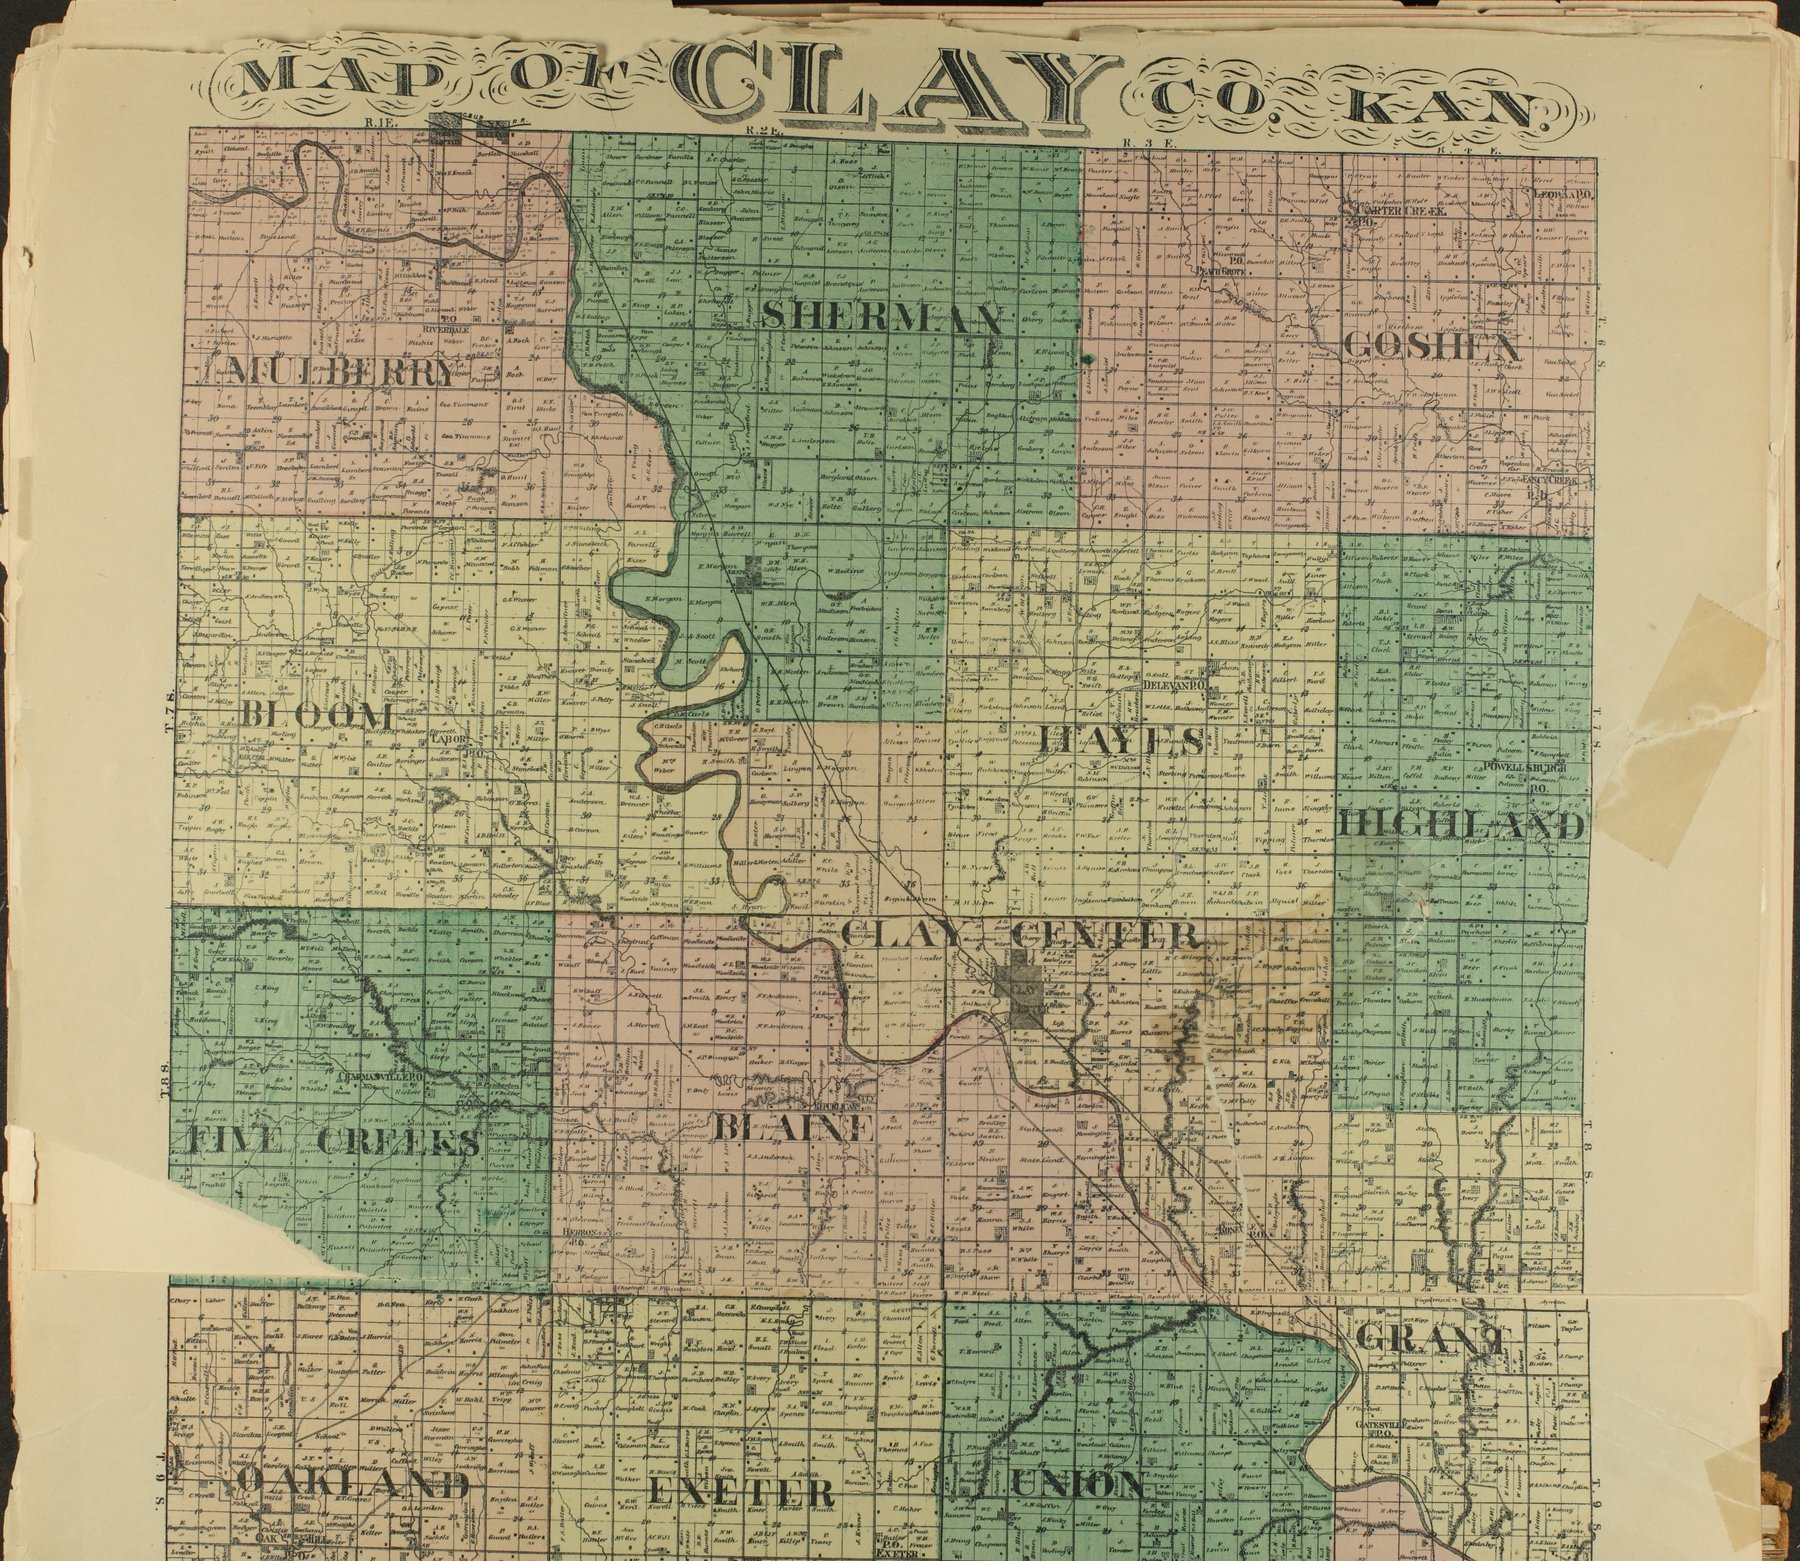 Historical plat book of Clay County, Kansas - 9